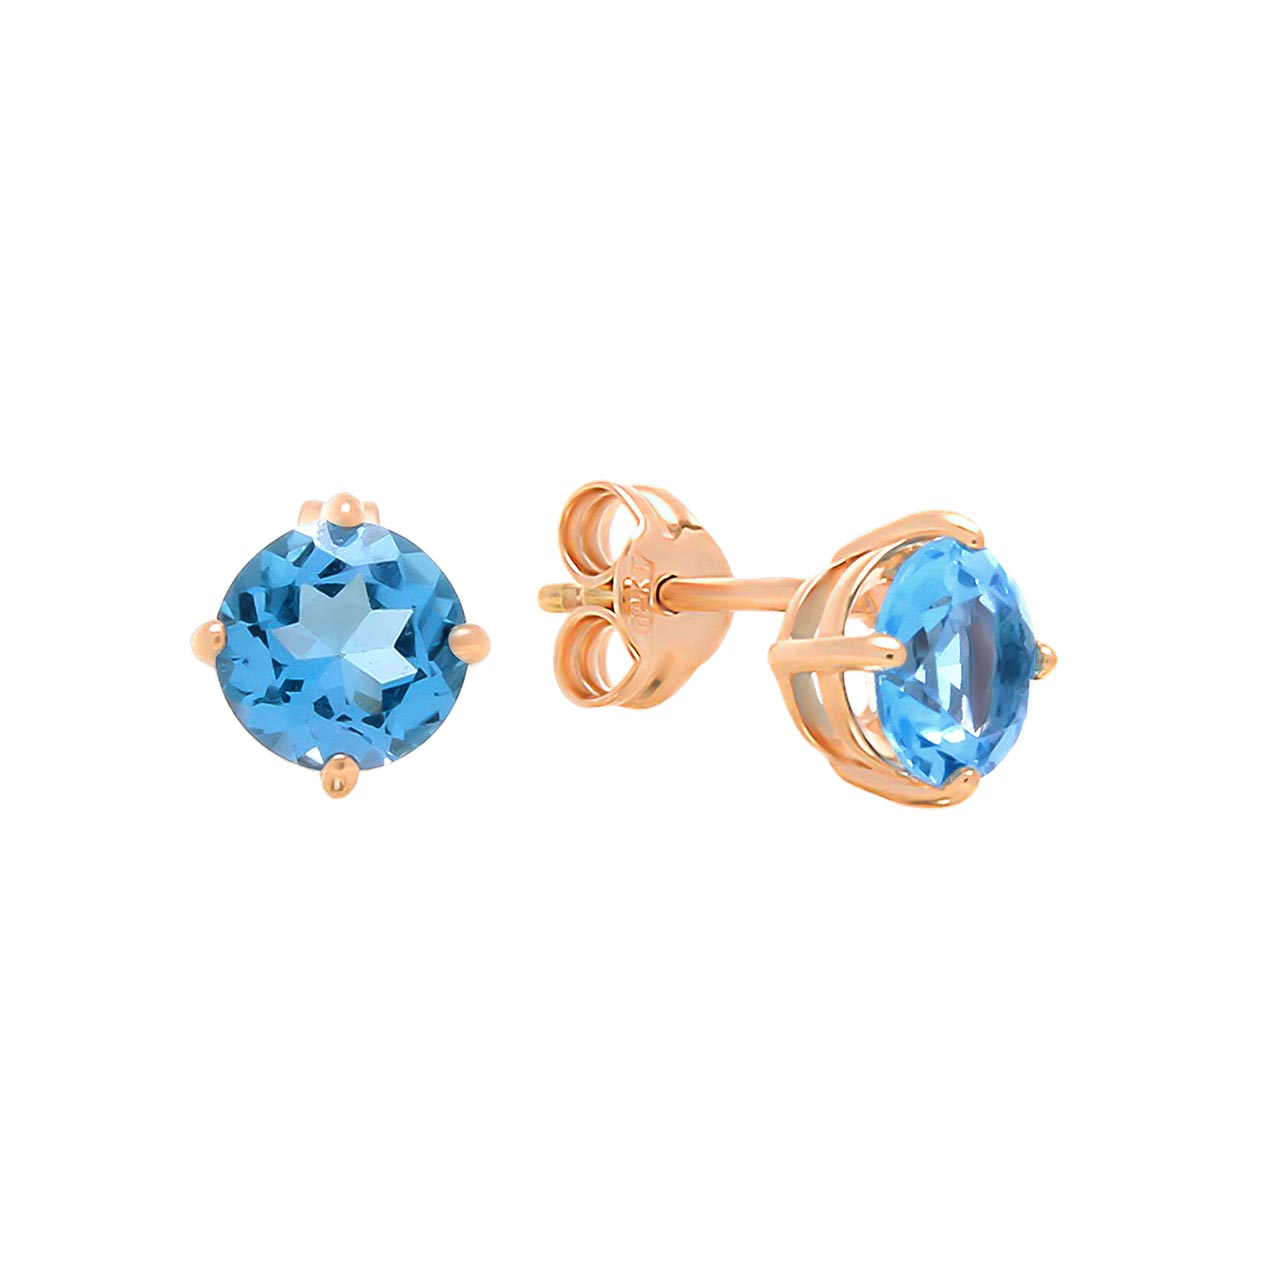 Blue Topaz Double Gallery Stud Earrings